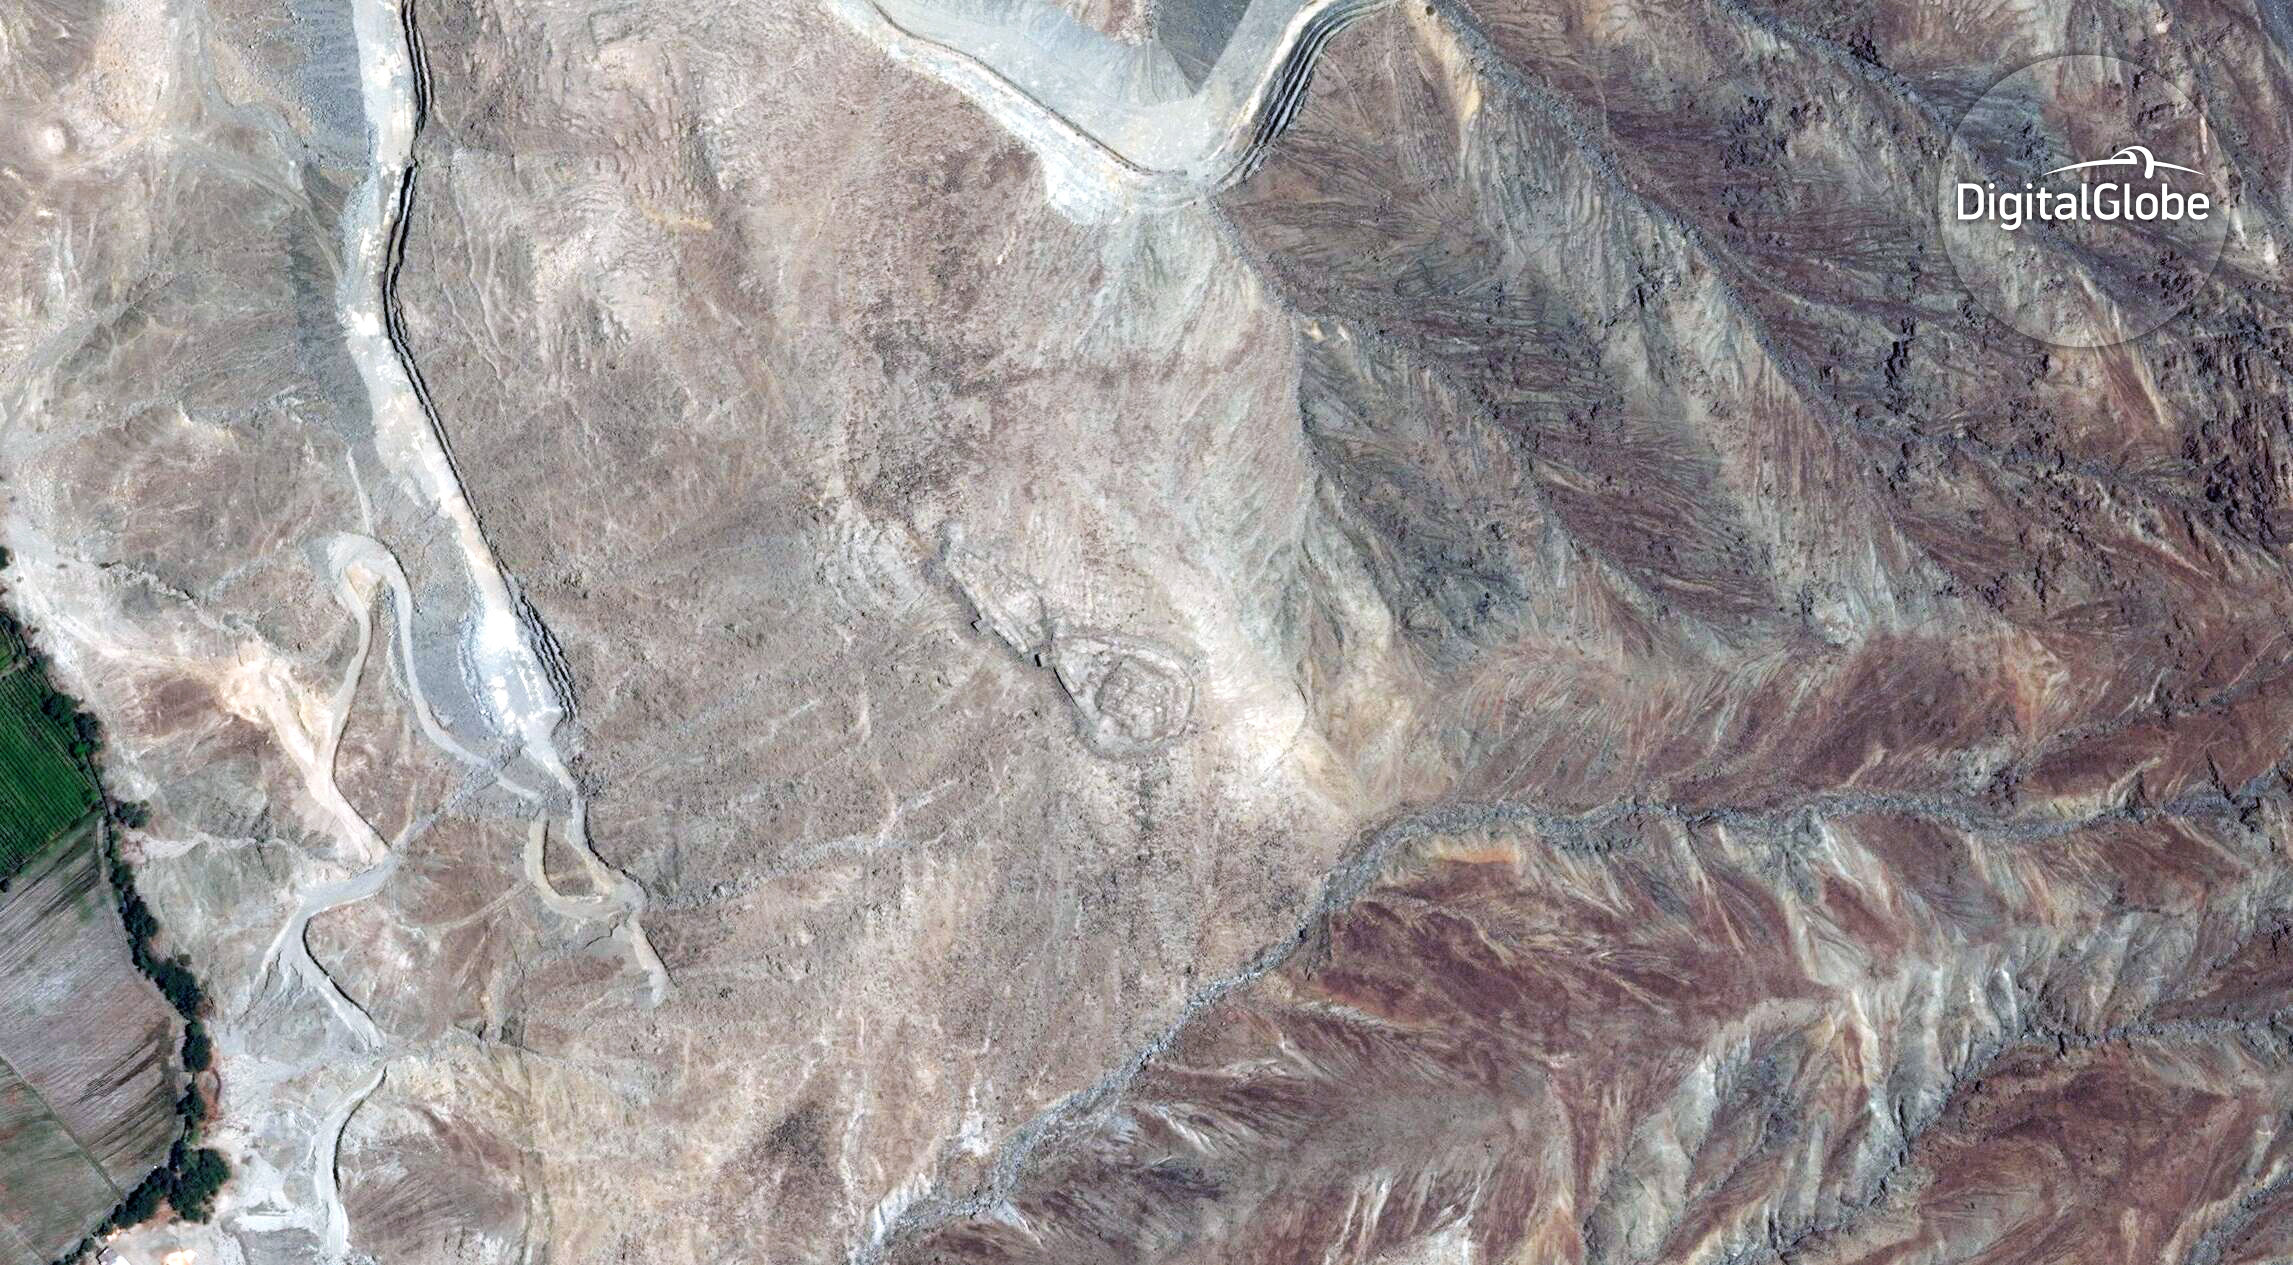 Users will search more than 200,000 square kilometers of satellite imagery. Large sections like this will be broken into smaller tiles — and archaeological features like this stone structure on a hill in Peru's highlands. Image: ©DigitalGlobe 2017